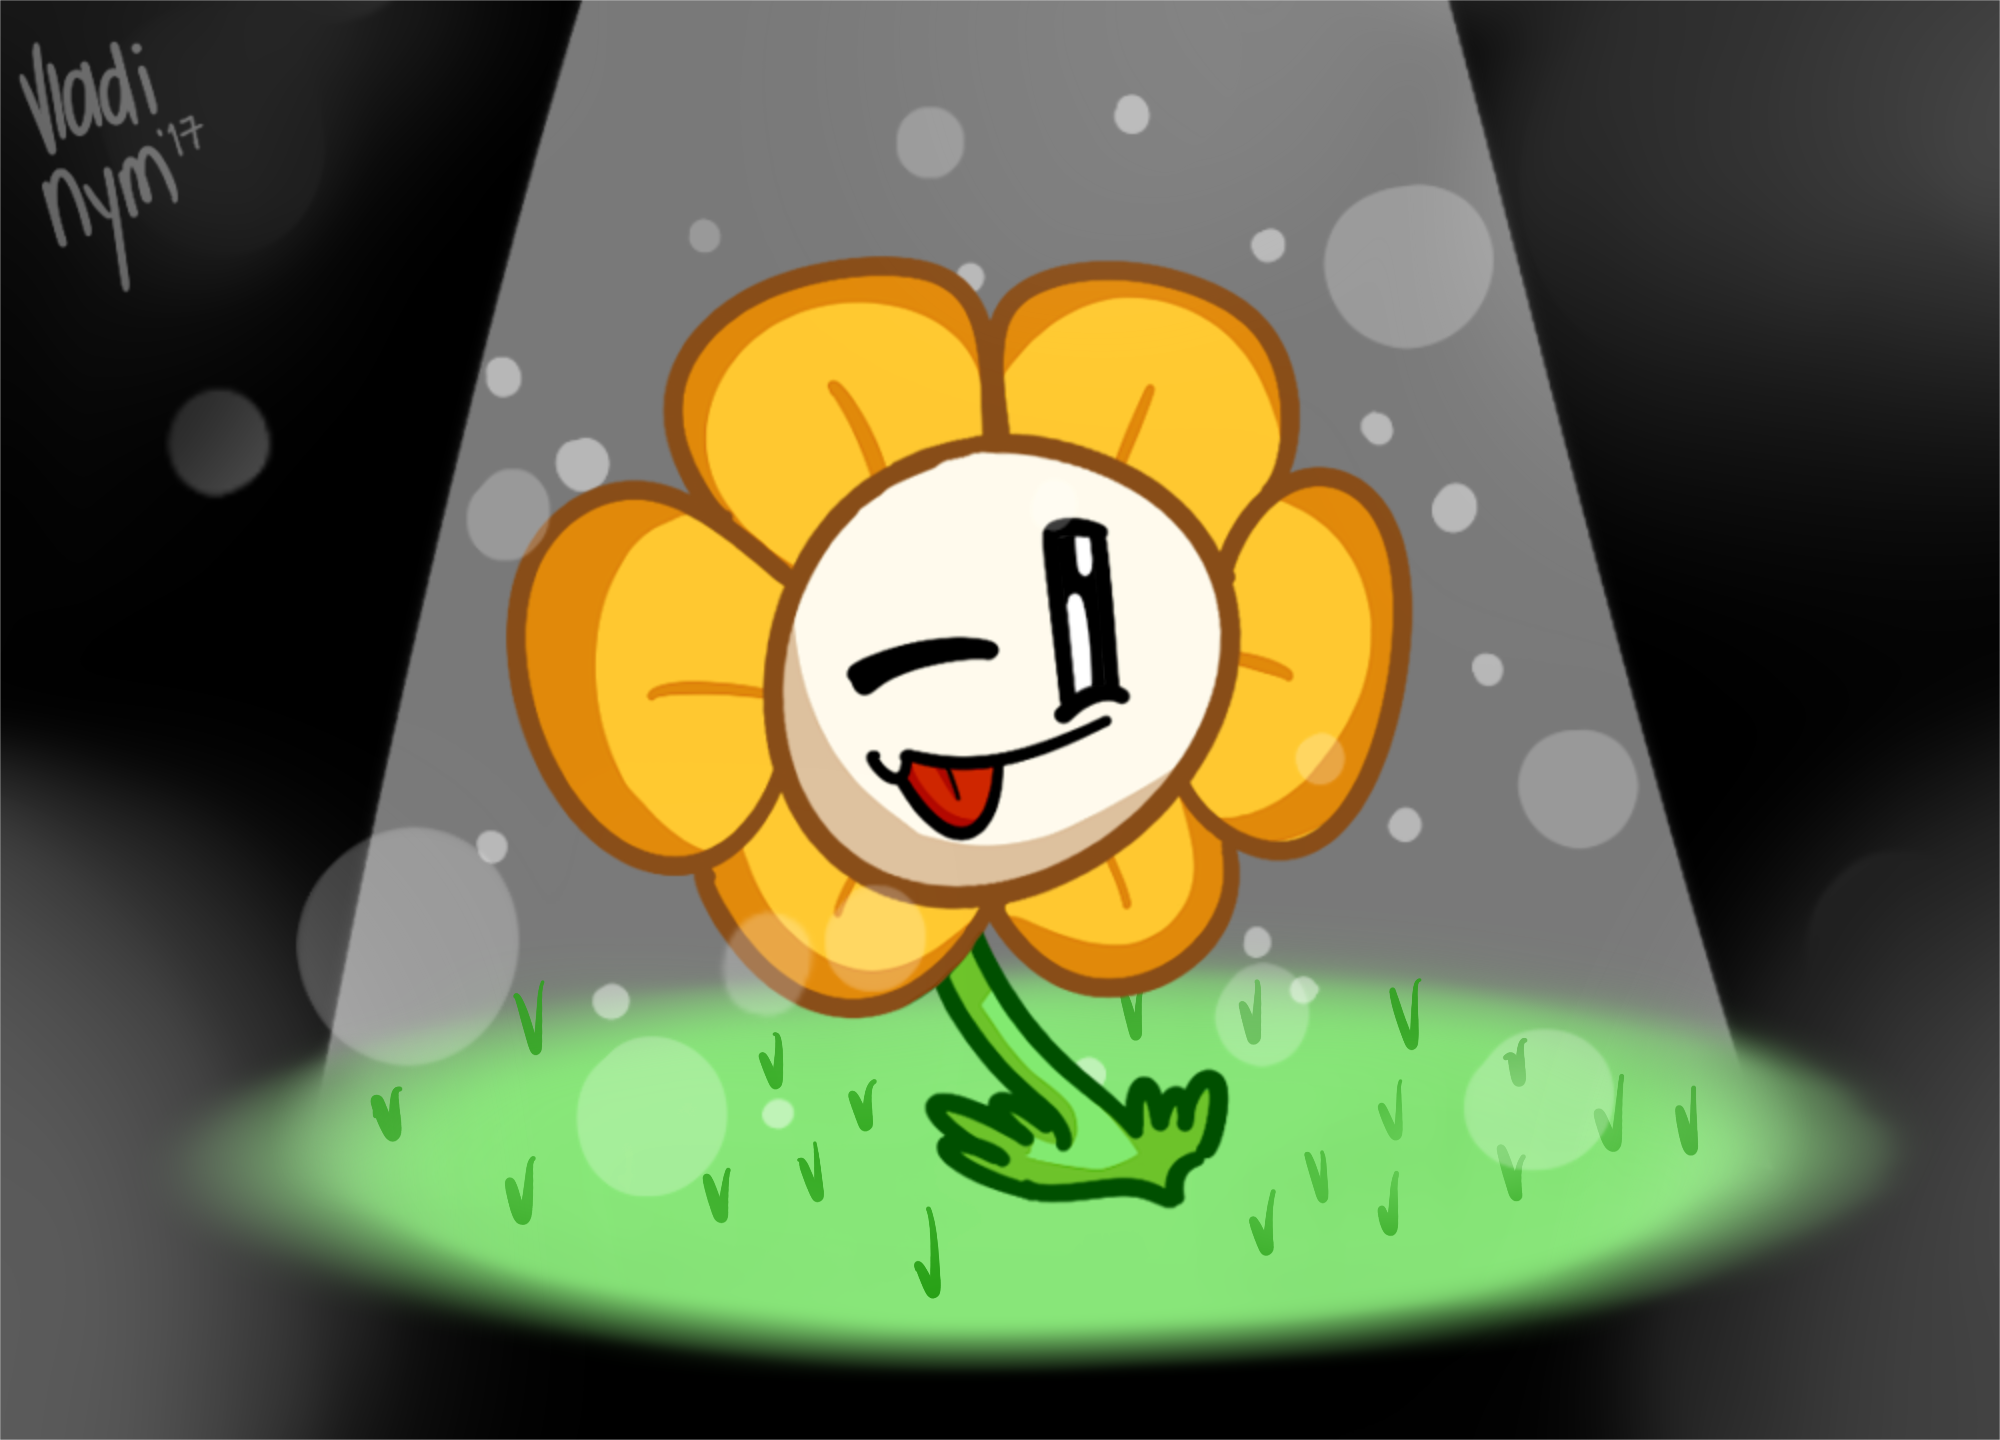 A Talking Flower Has Spawned